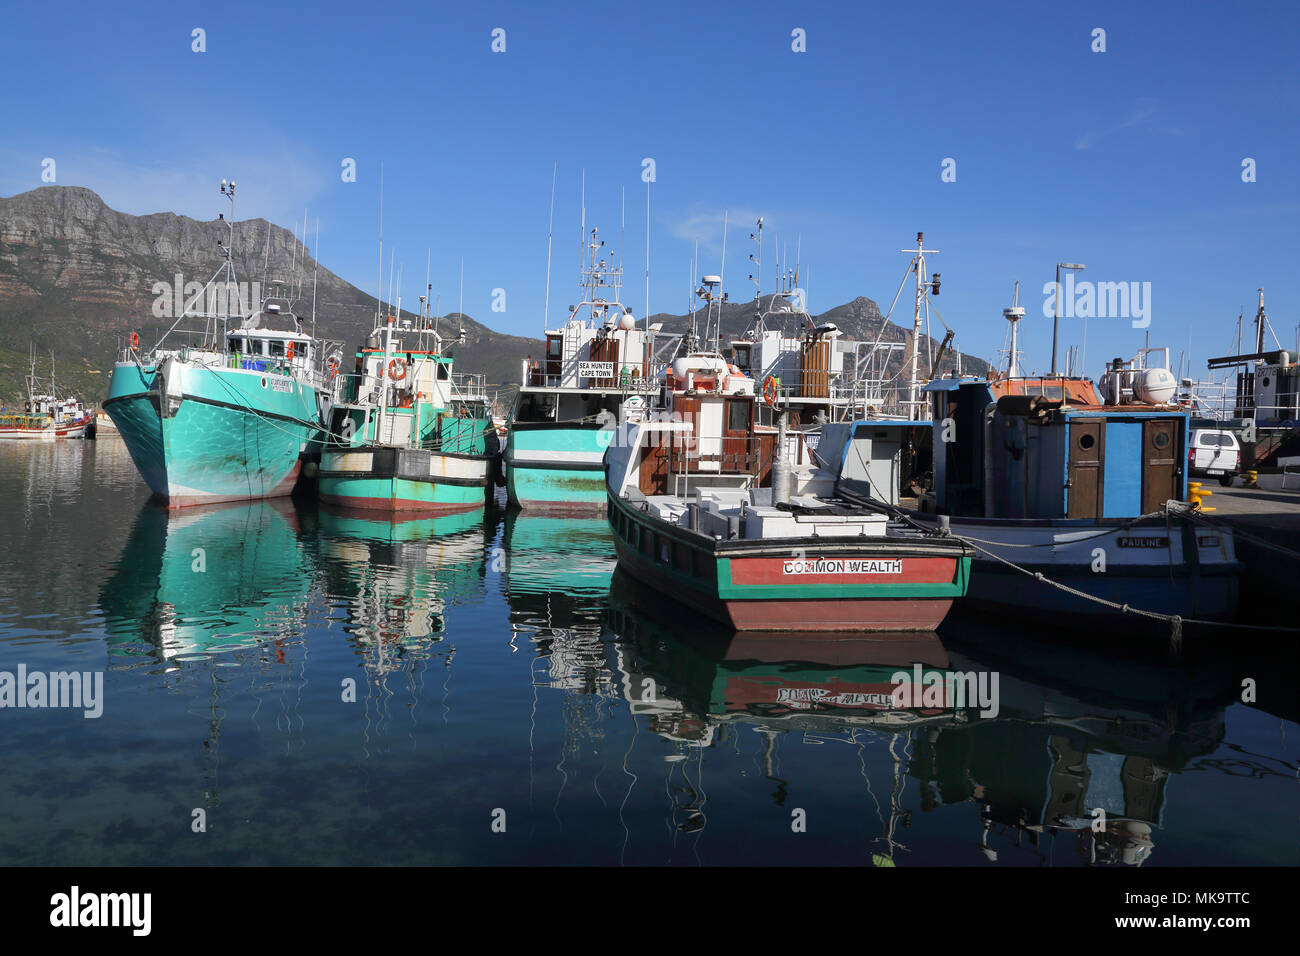 mariners wharf in hout bay south africa Stock Photo